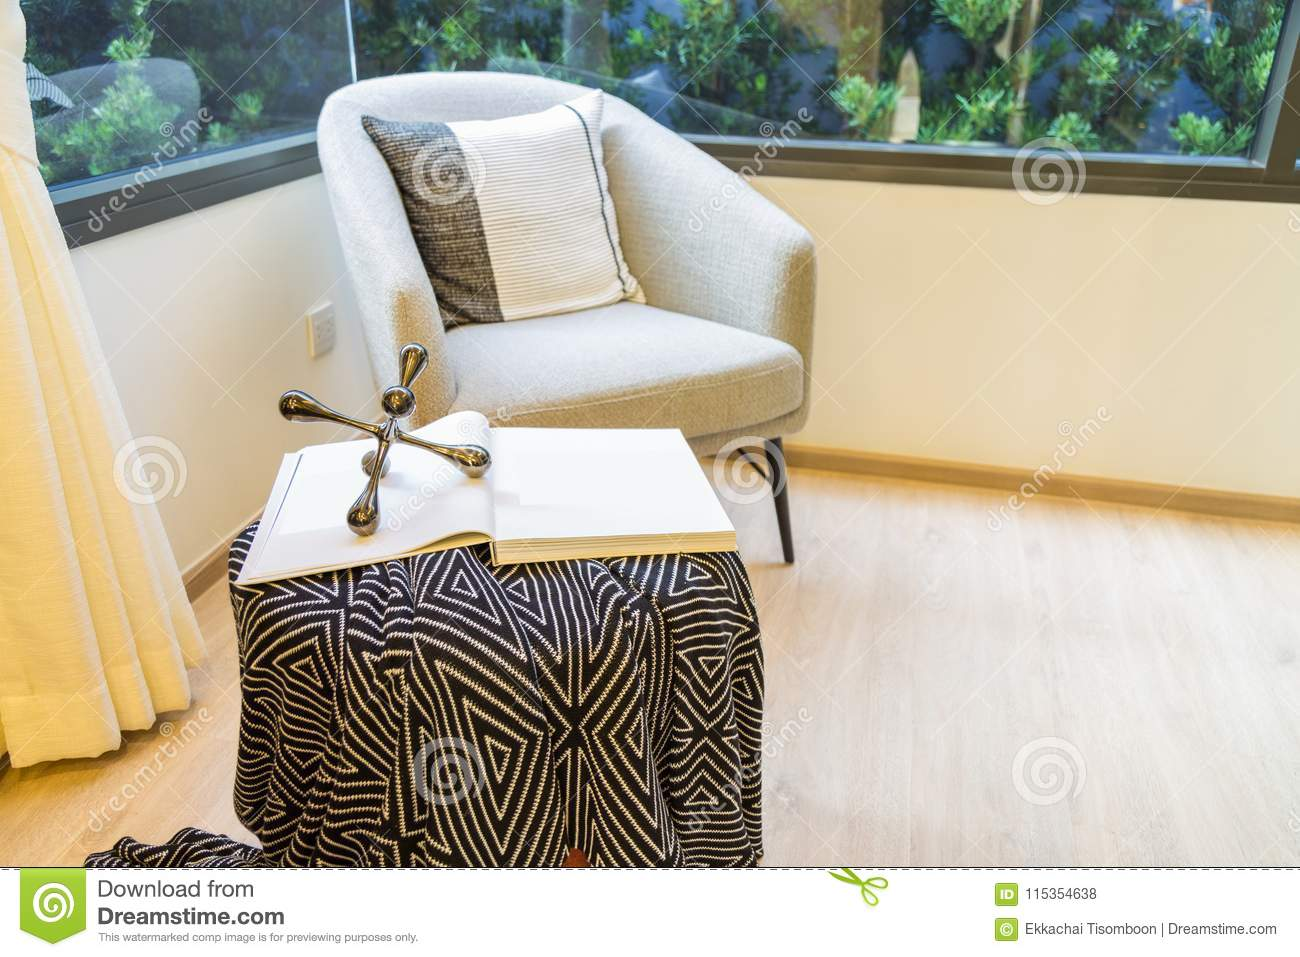 Corner Of Living Room With A Sofa Chair And A Book On Table